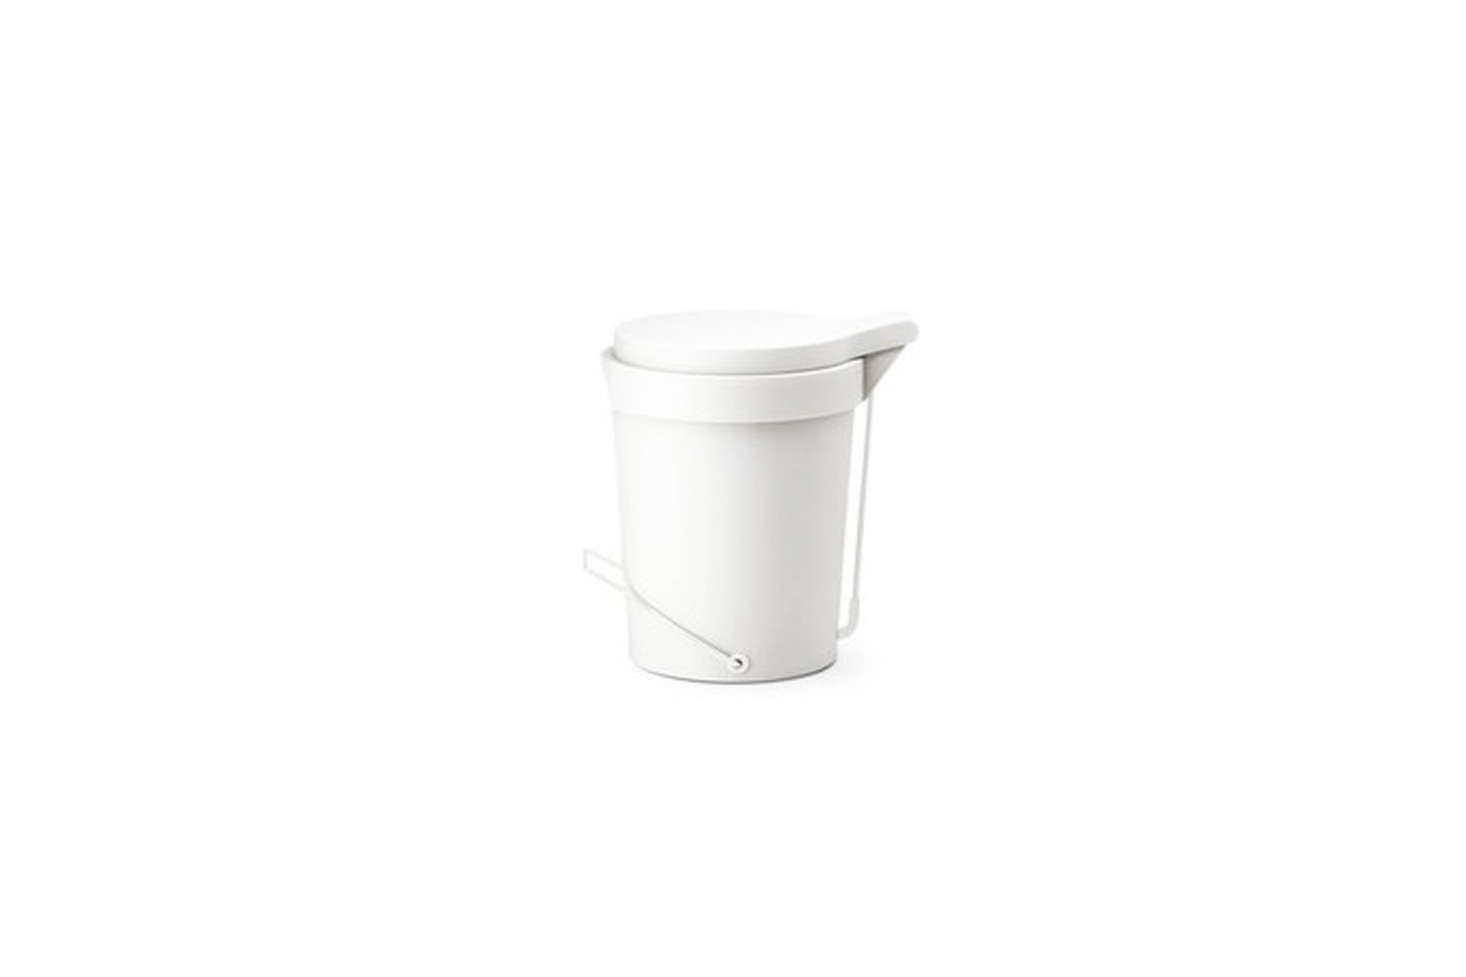 The Authentics Tip 7 Liter Pedal Bin from Germany comes in a range of colors; €3